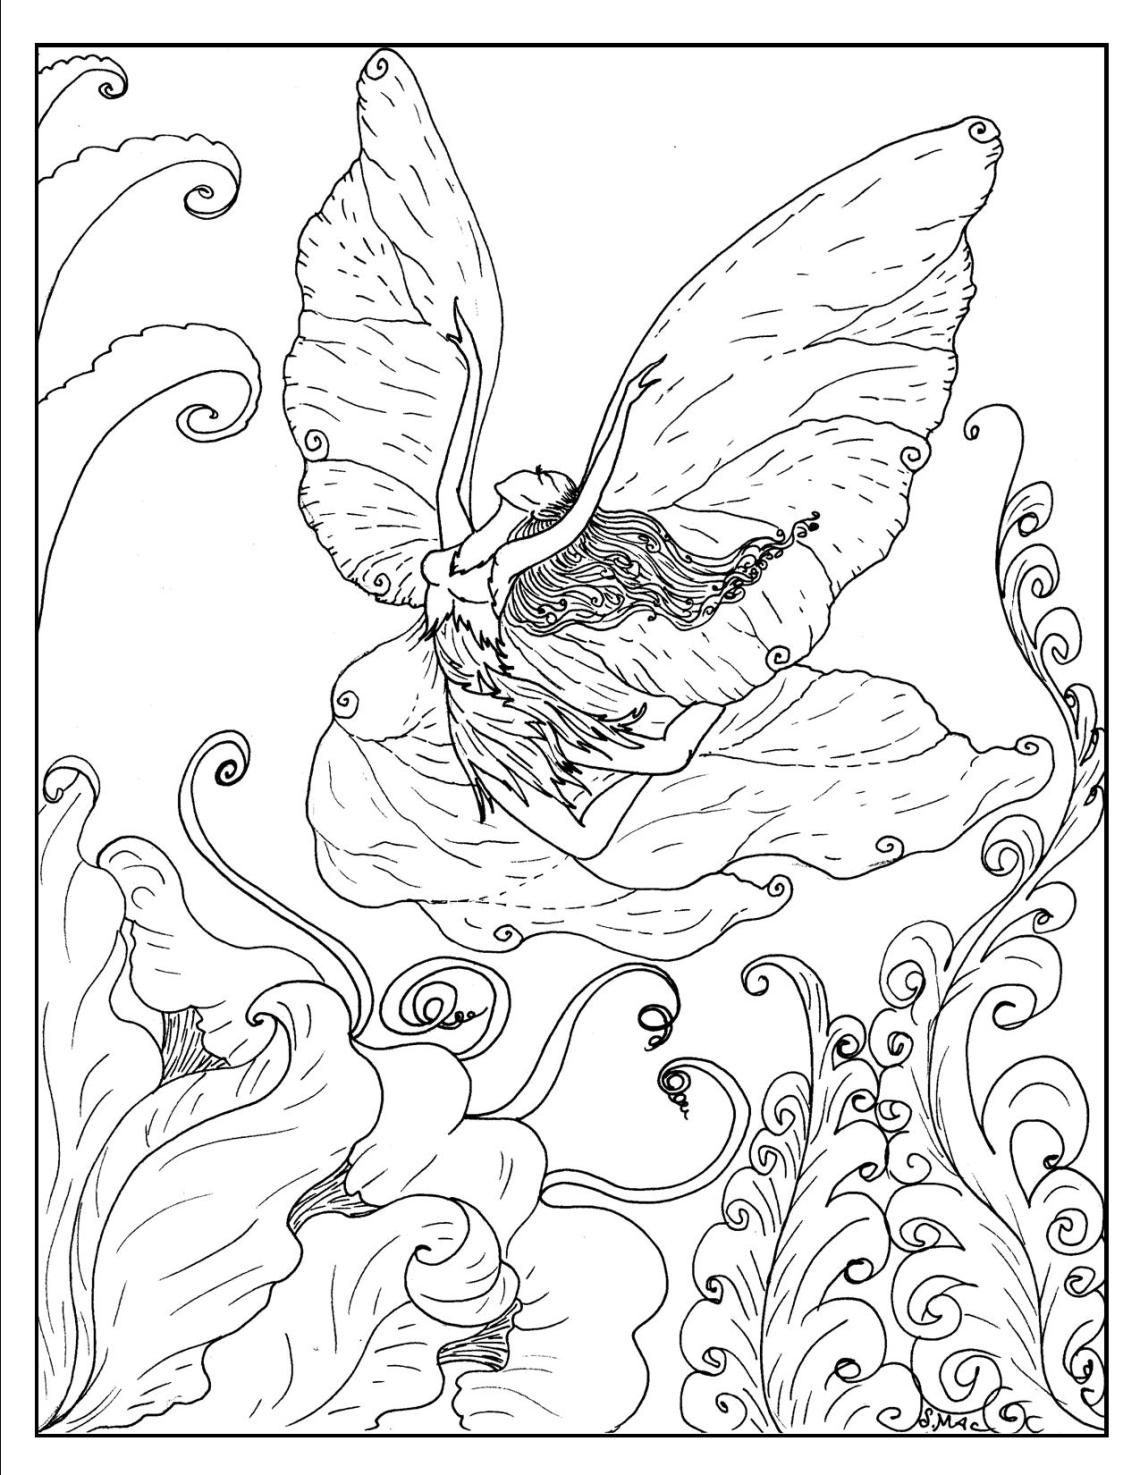 Free Adult Photos free adult coloring pages – s.mac's place to be